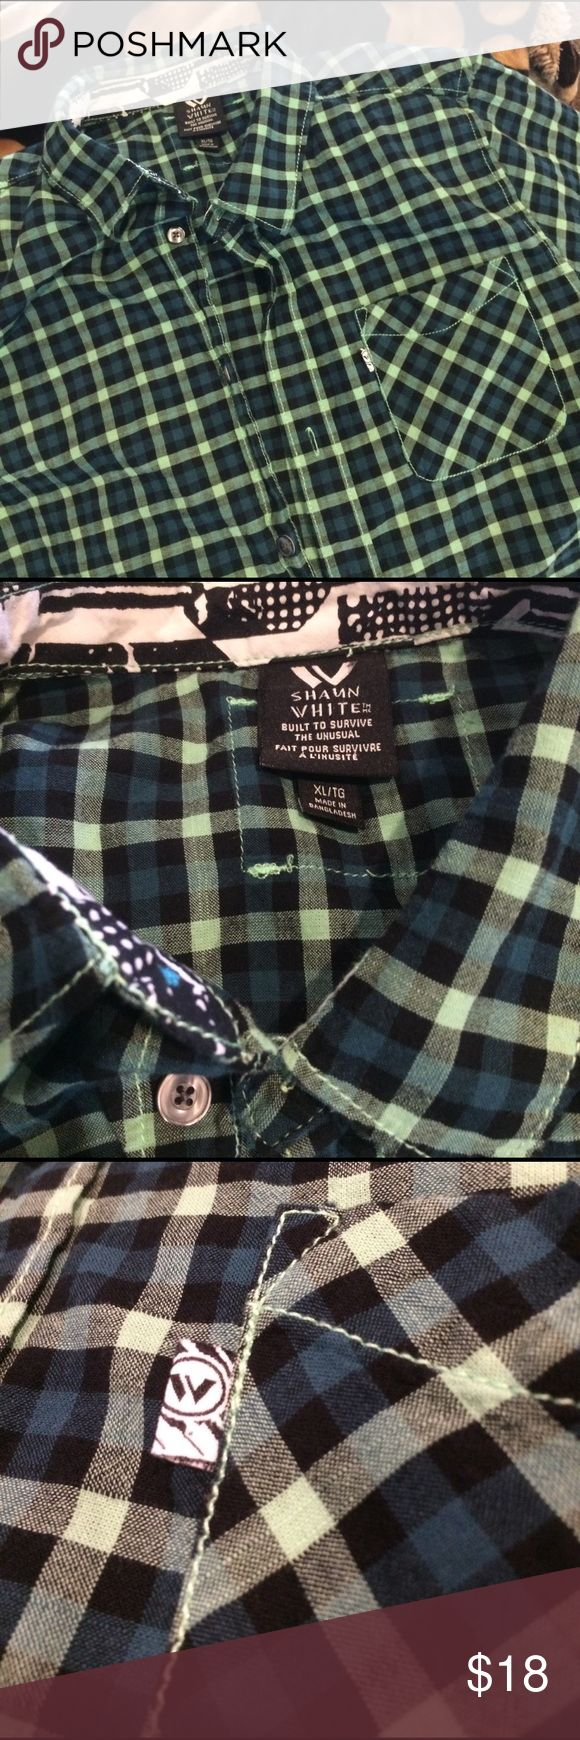 Shaun White Olympic Gold Medalist skate shirt. Olympic Gold Medalist Shaun White's styling skate shirt features green, black and blue checks with sweet pocket and button logos. He'll look good!  New condition. Size XL boys. Shaun White Shirts & Tops Button Down Shirts